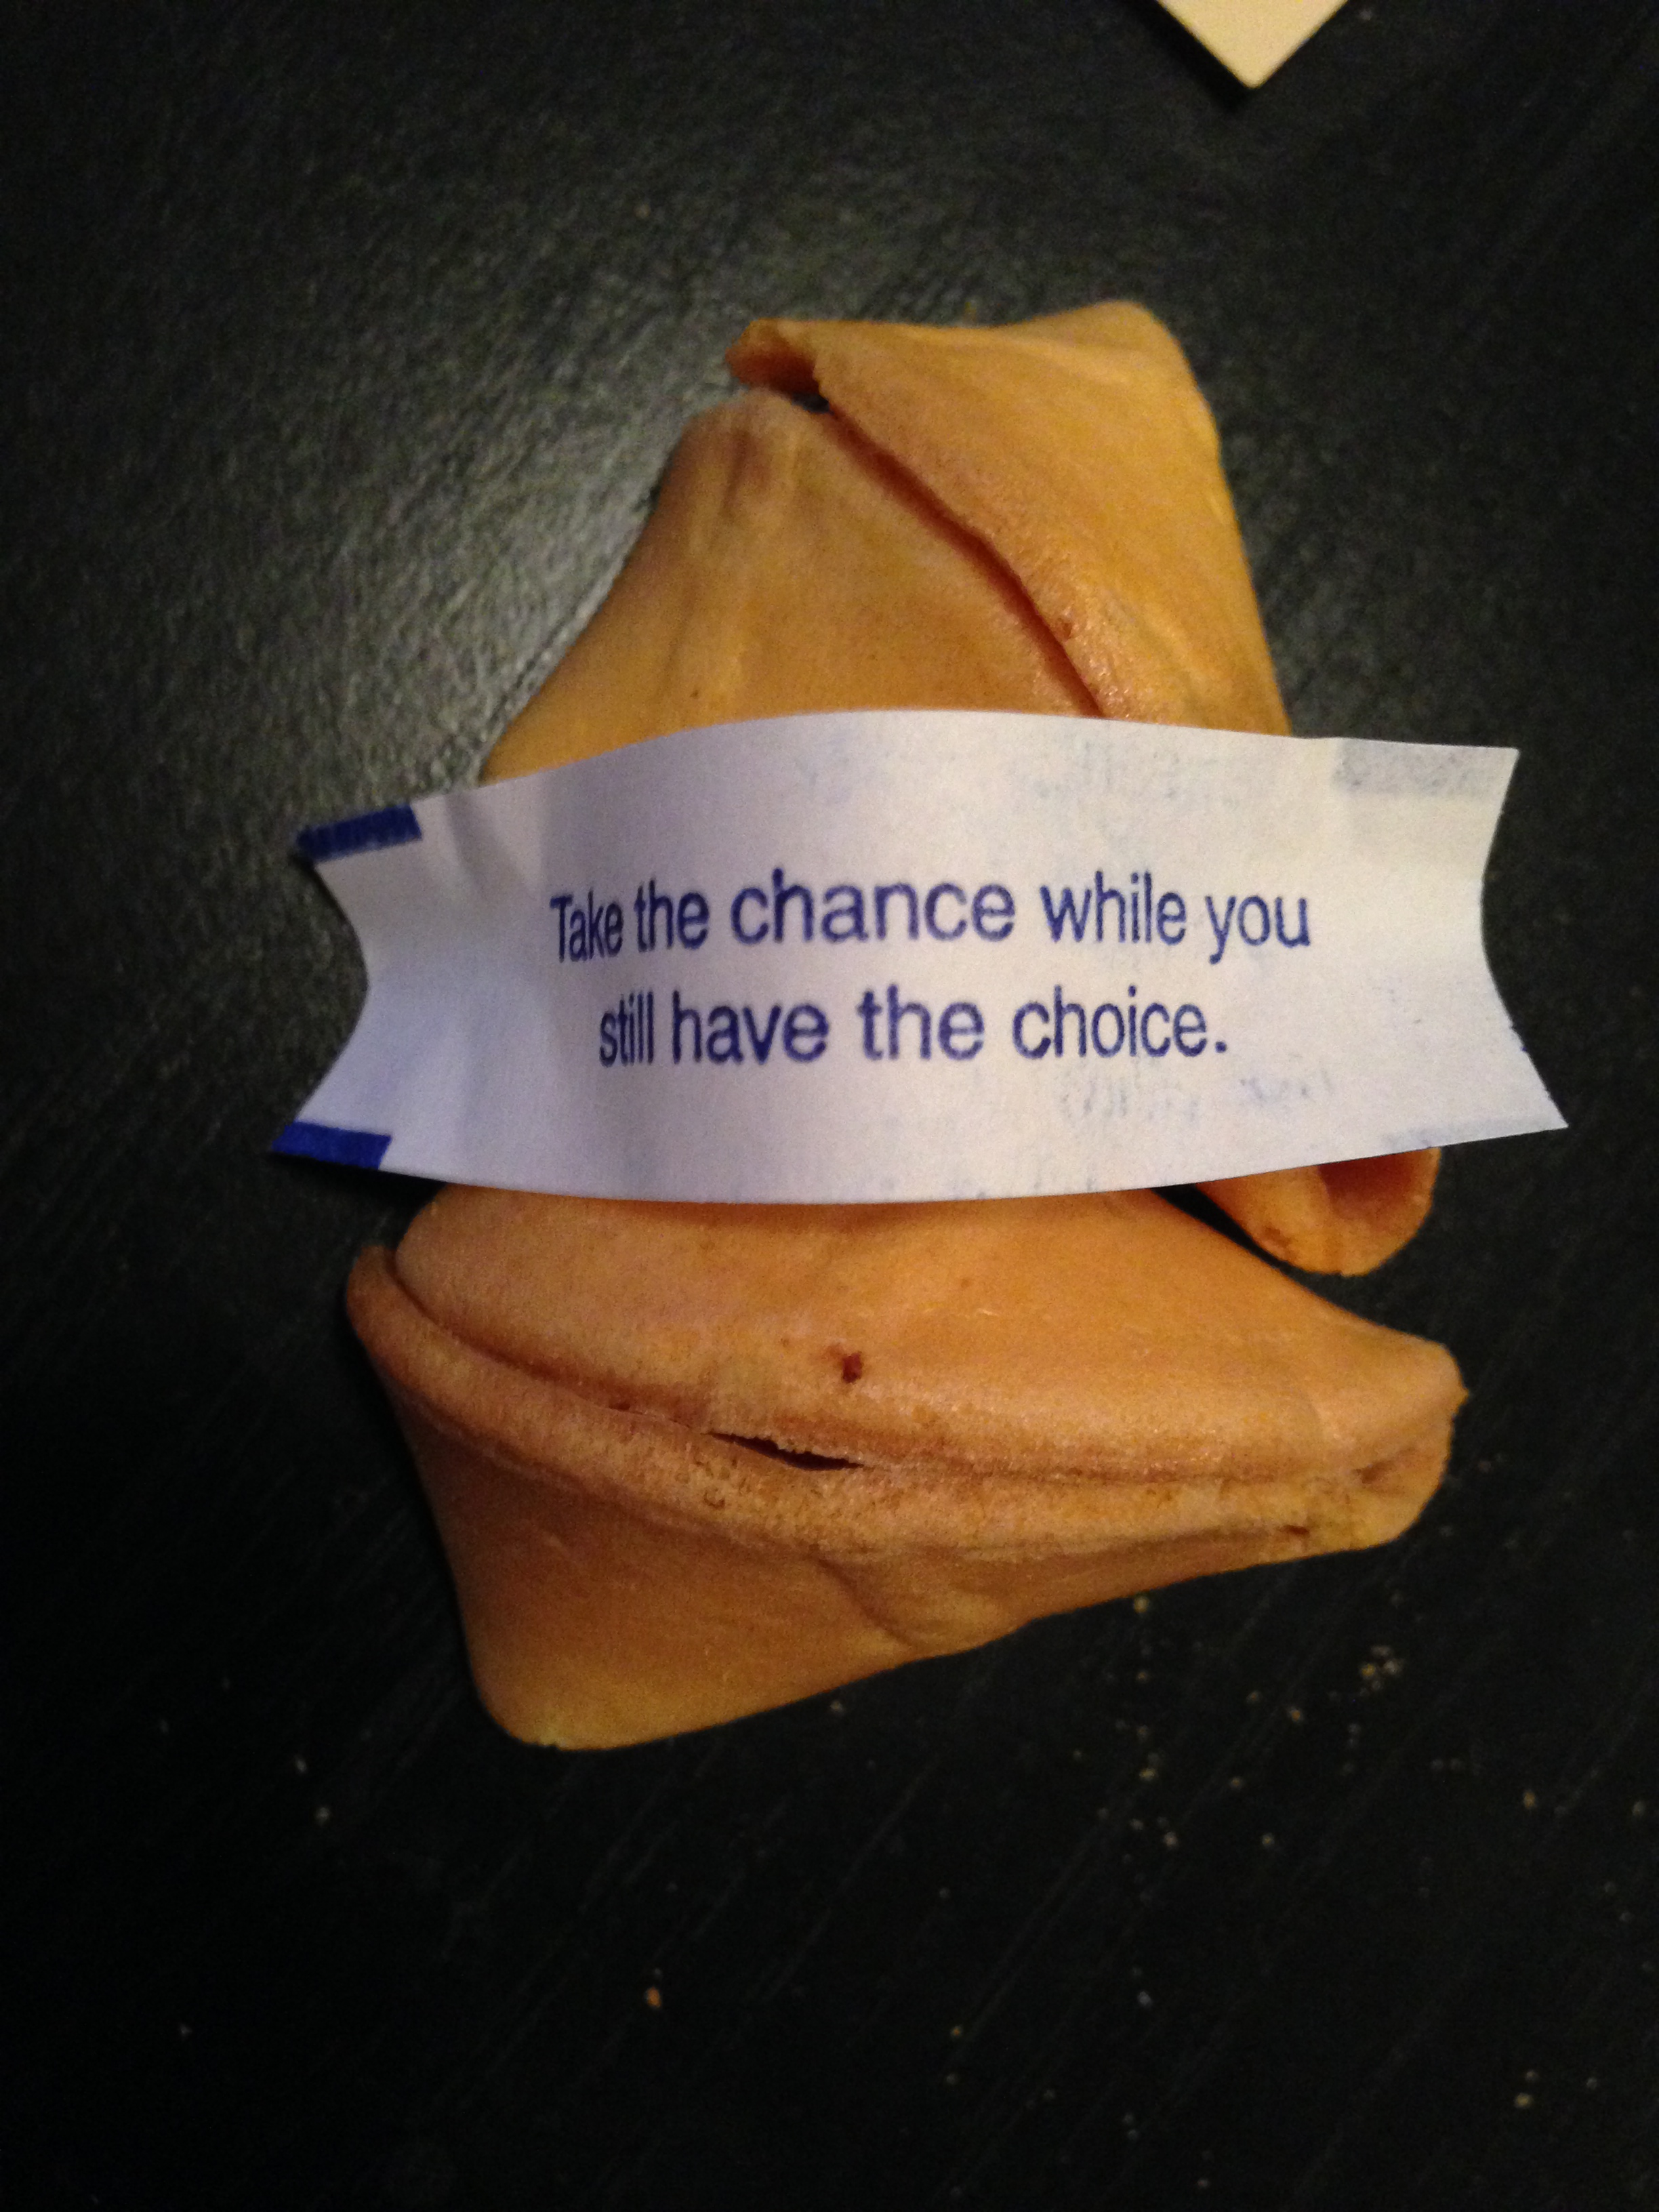 This fortune cookie message was my favorite.